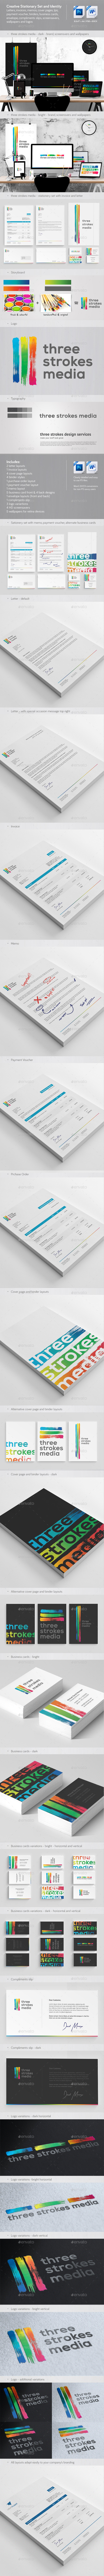 GraphicRiver Creative Corporate Identity and Stationery 10859539